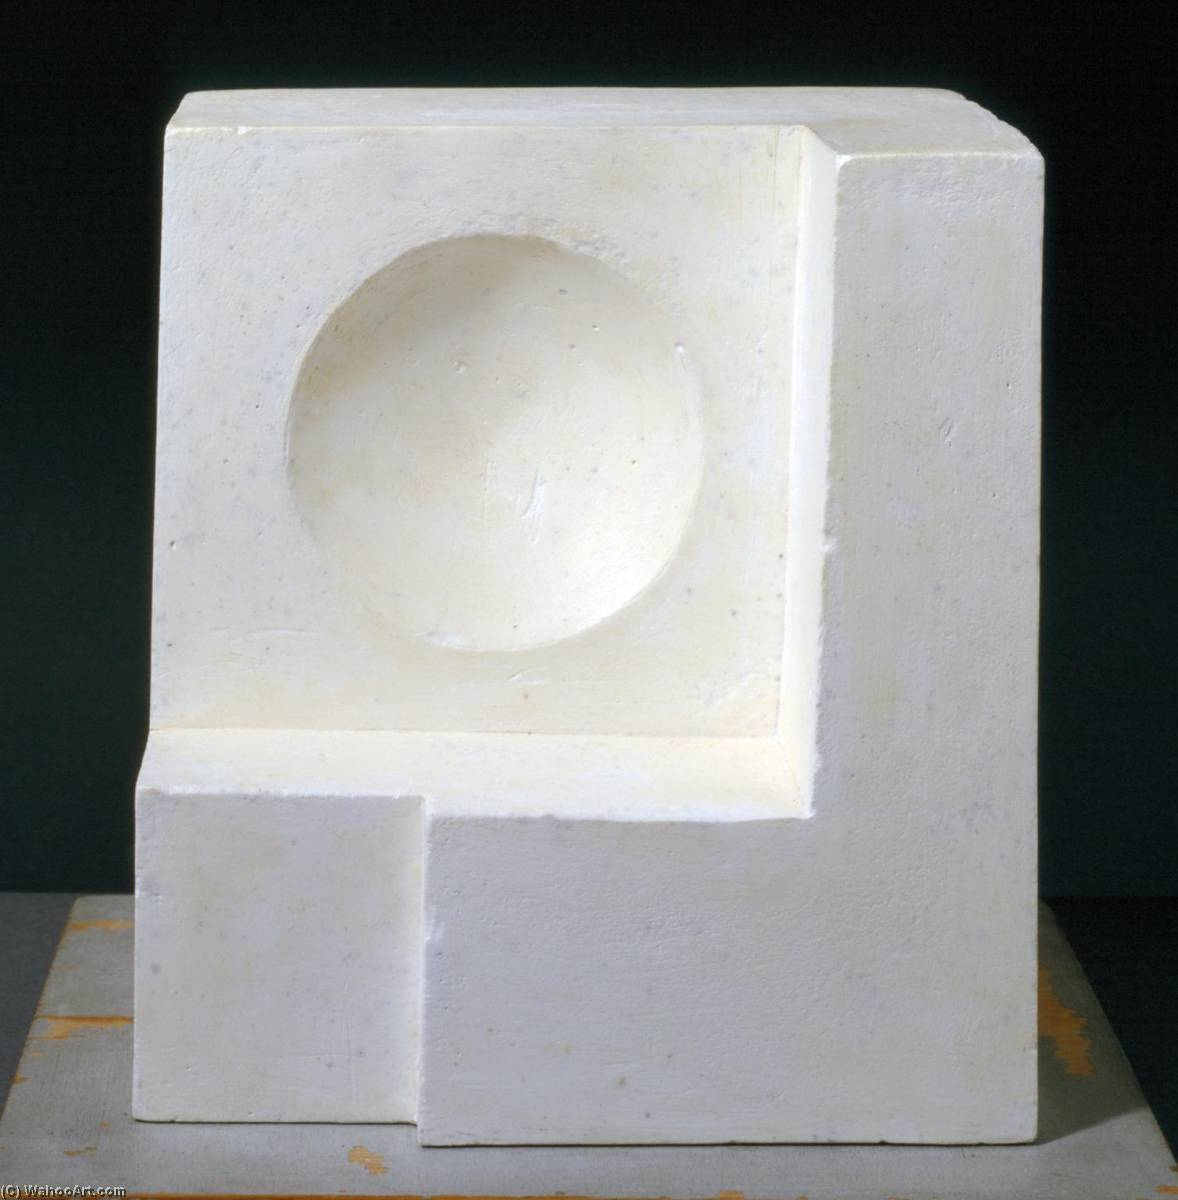 1936 (white relief sculpture version 1), Wood by Ben Nicholson (1894-1982, United Kingdom)